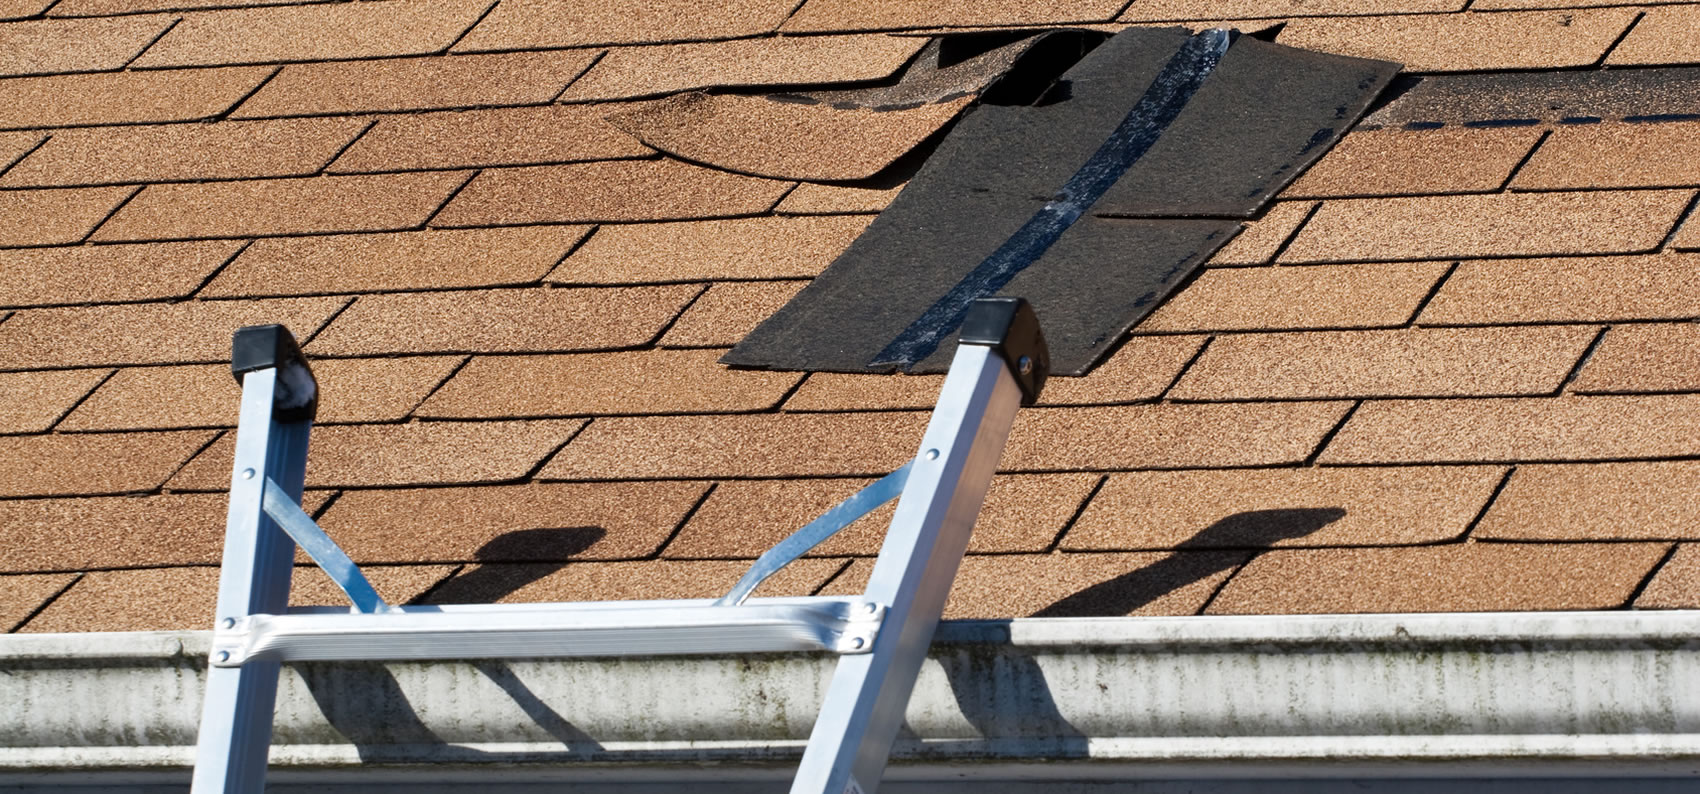 Contact A Roofer